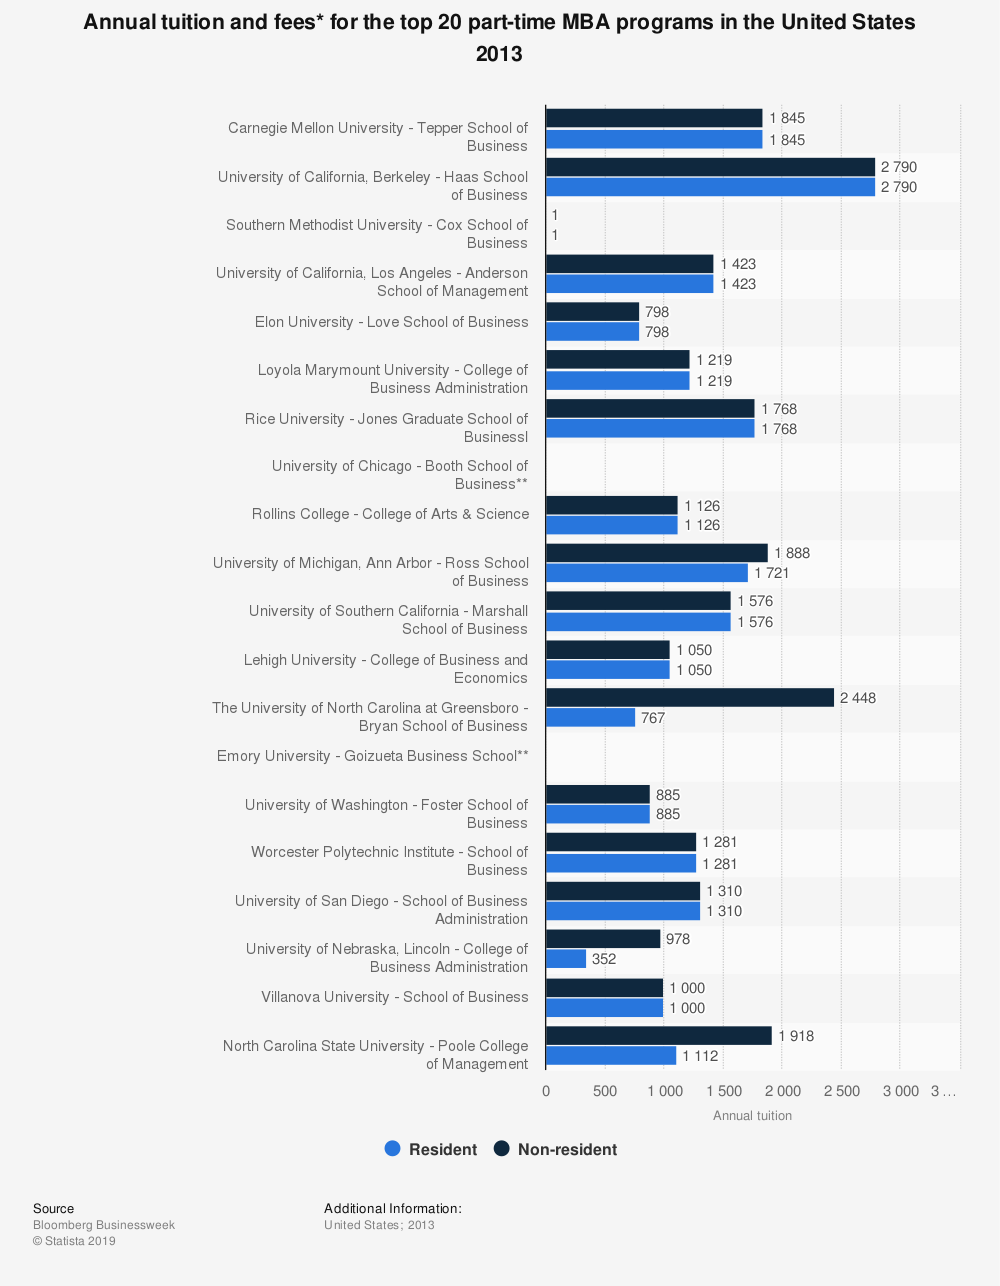 Statistic: Annual tuition and fees* for the top 20 part-time MBA programs in the United States 2013 | Statista